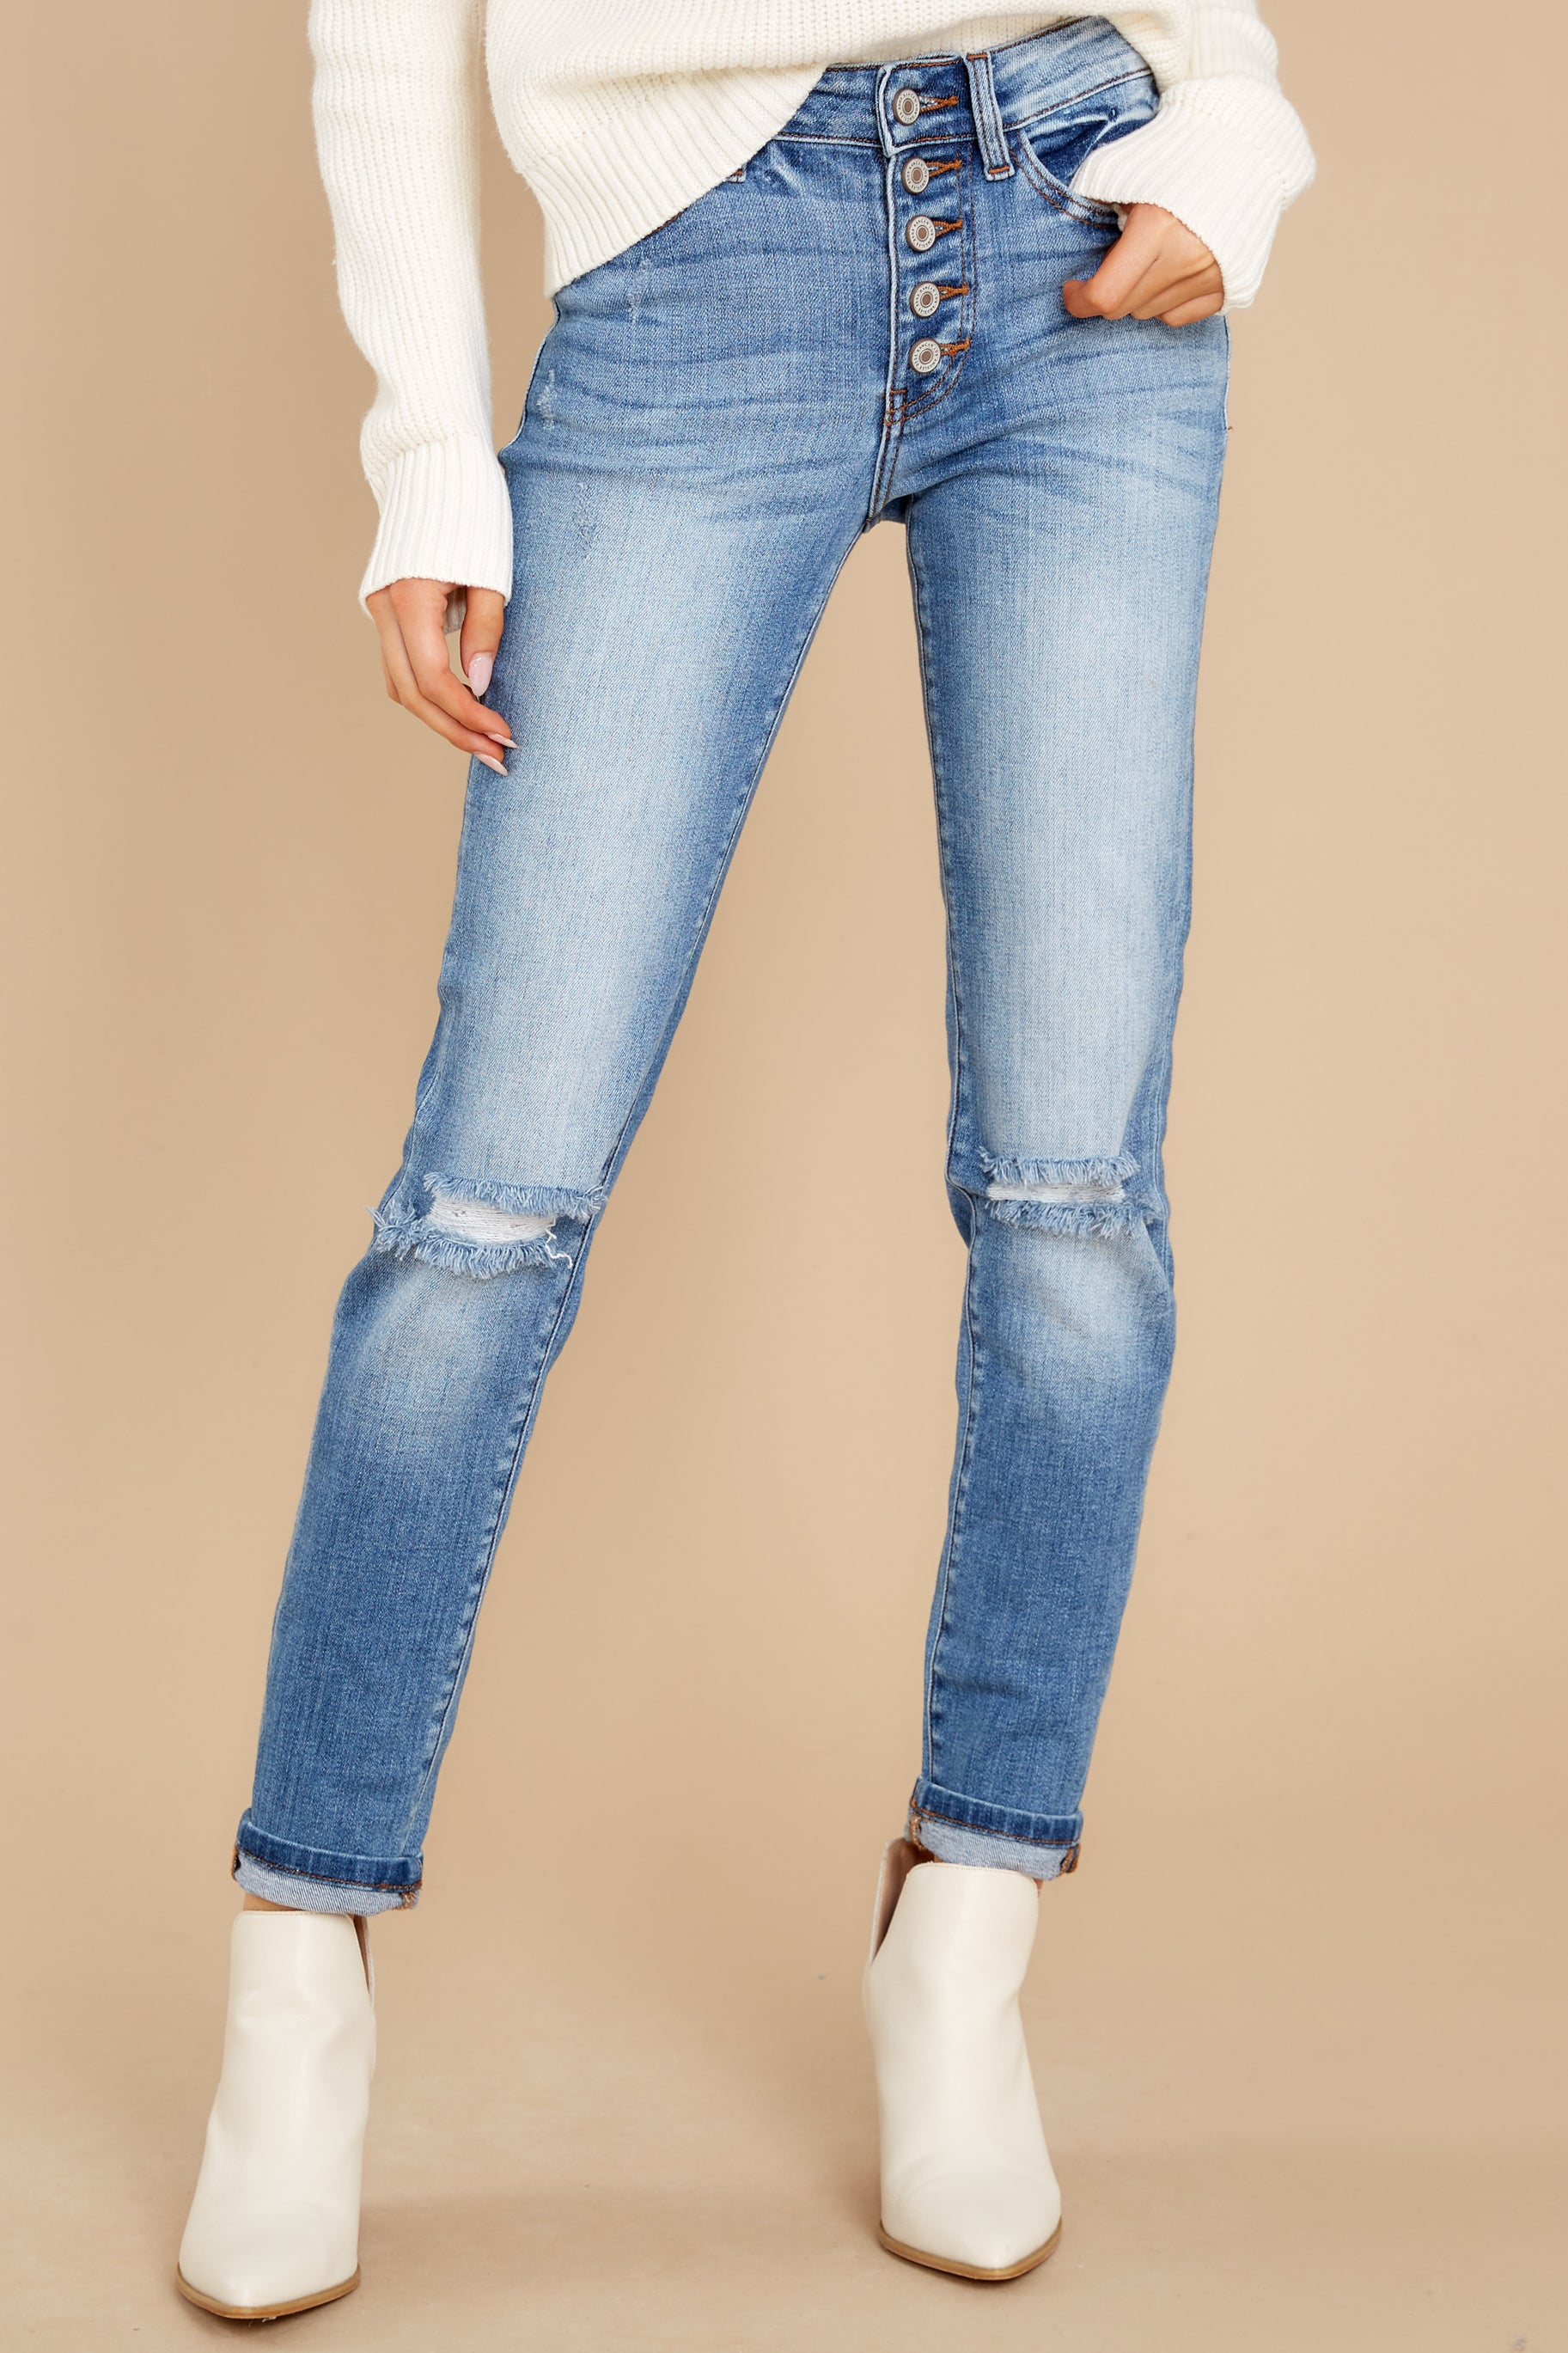 1 Look This Way Light Wash Distressed Skinny Jeans at reddress.com